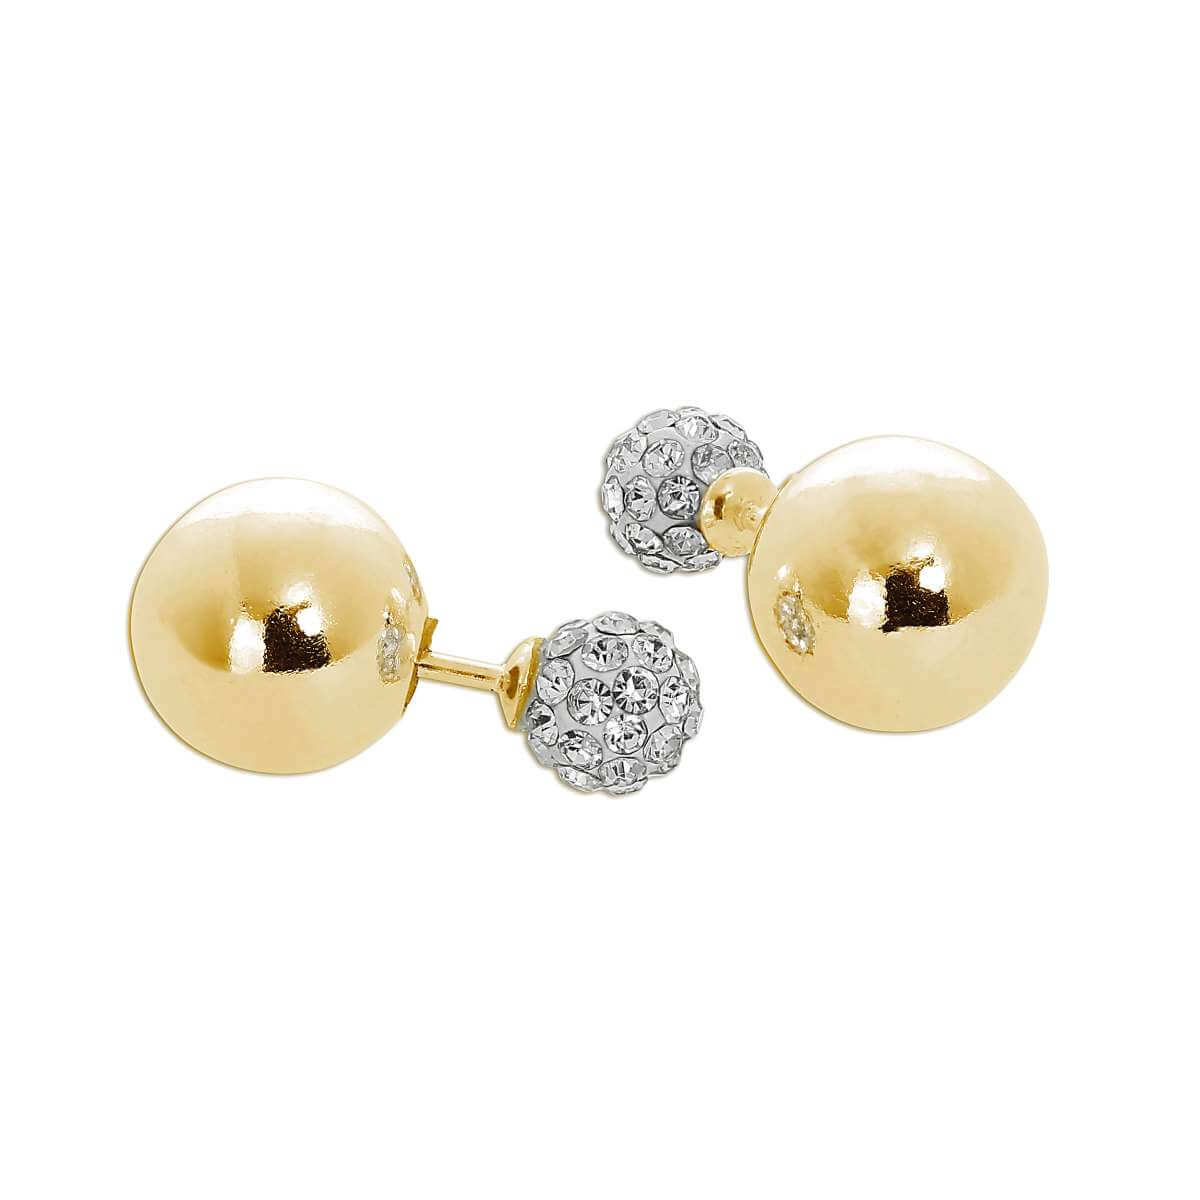 Gold Plated Sterling Silver Double Sided Plain & CZ Ball Stud Earrings